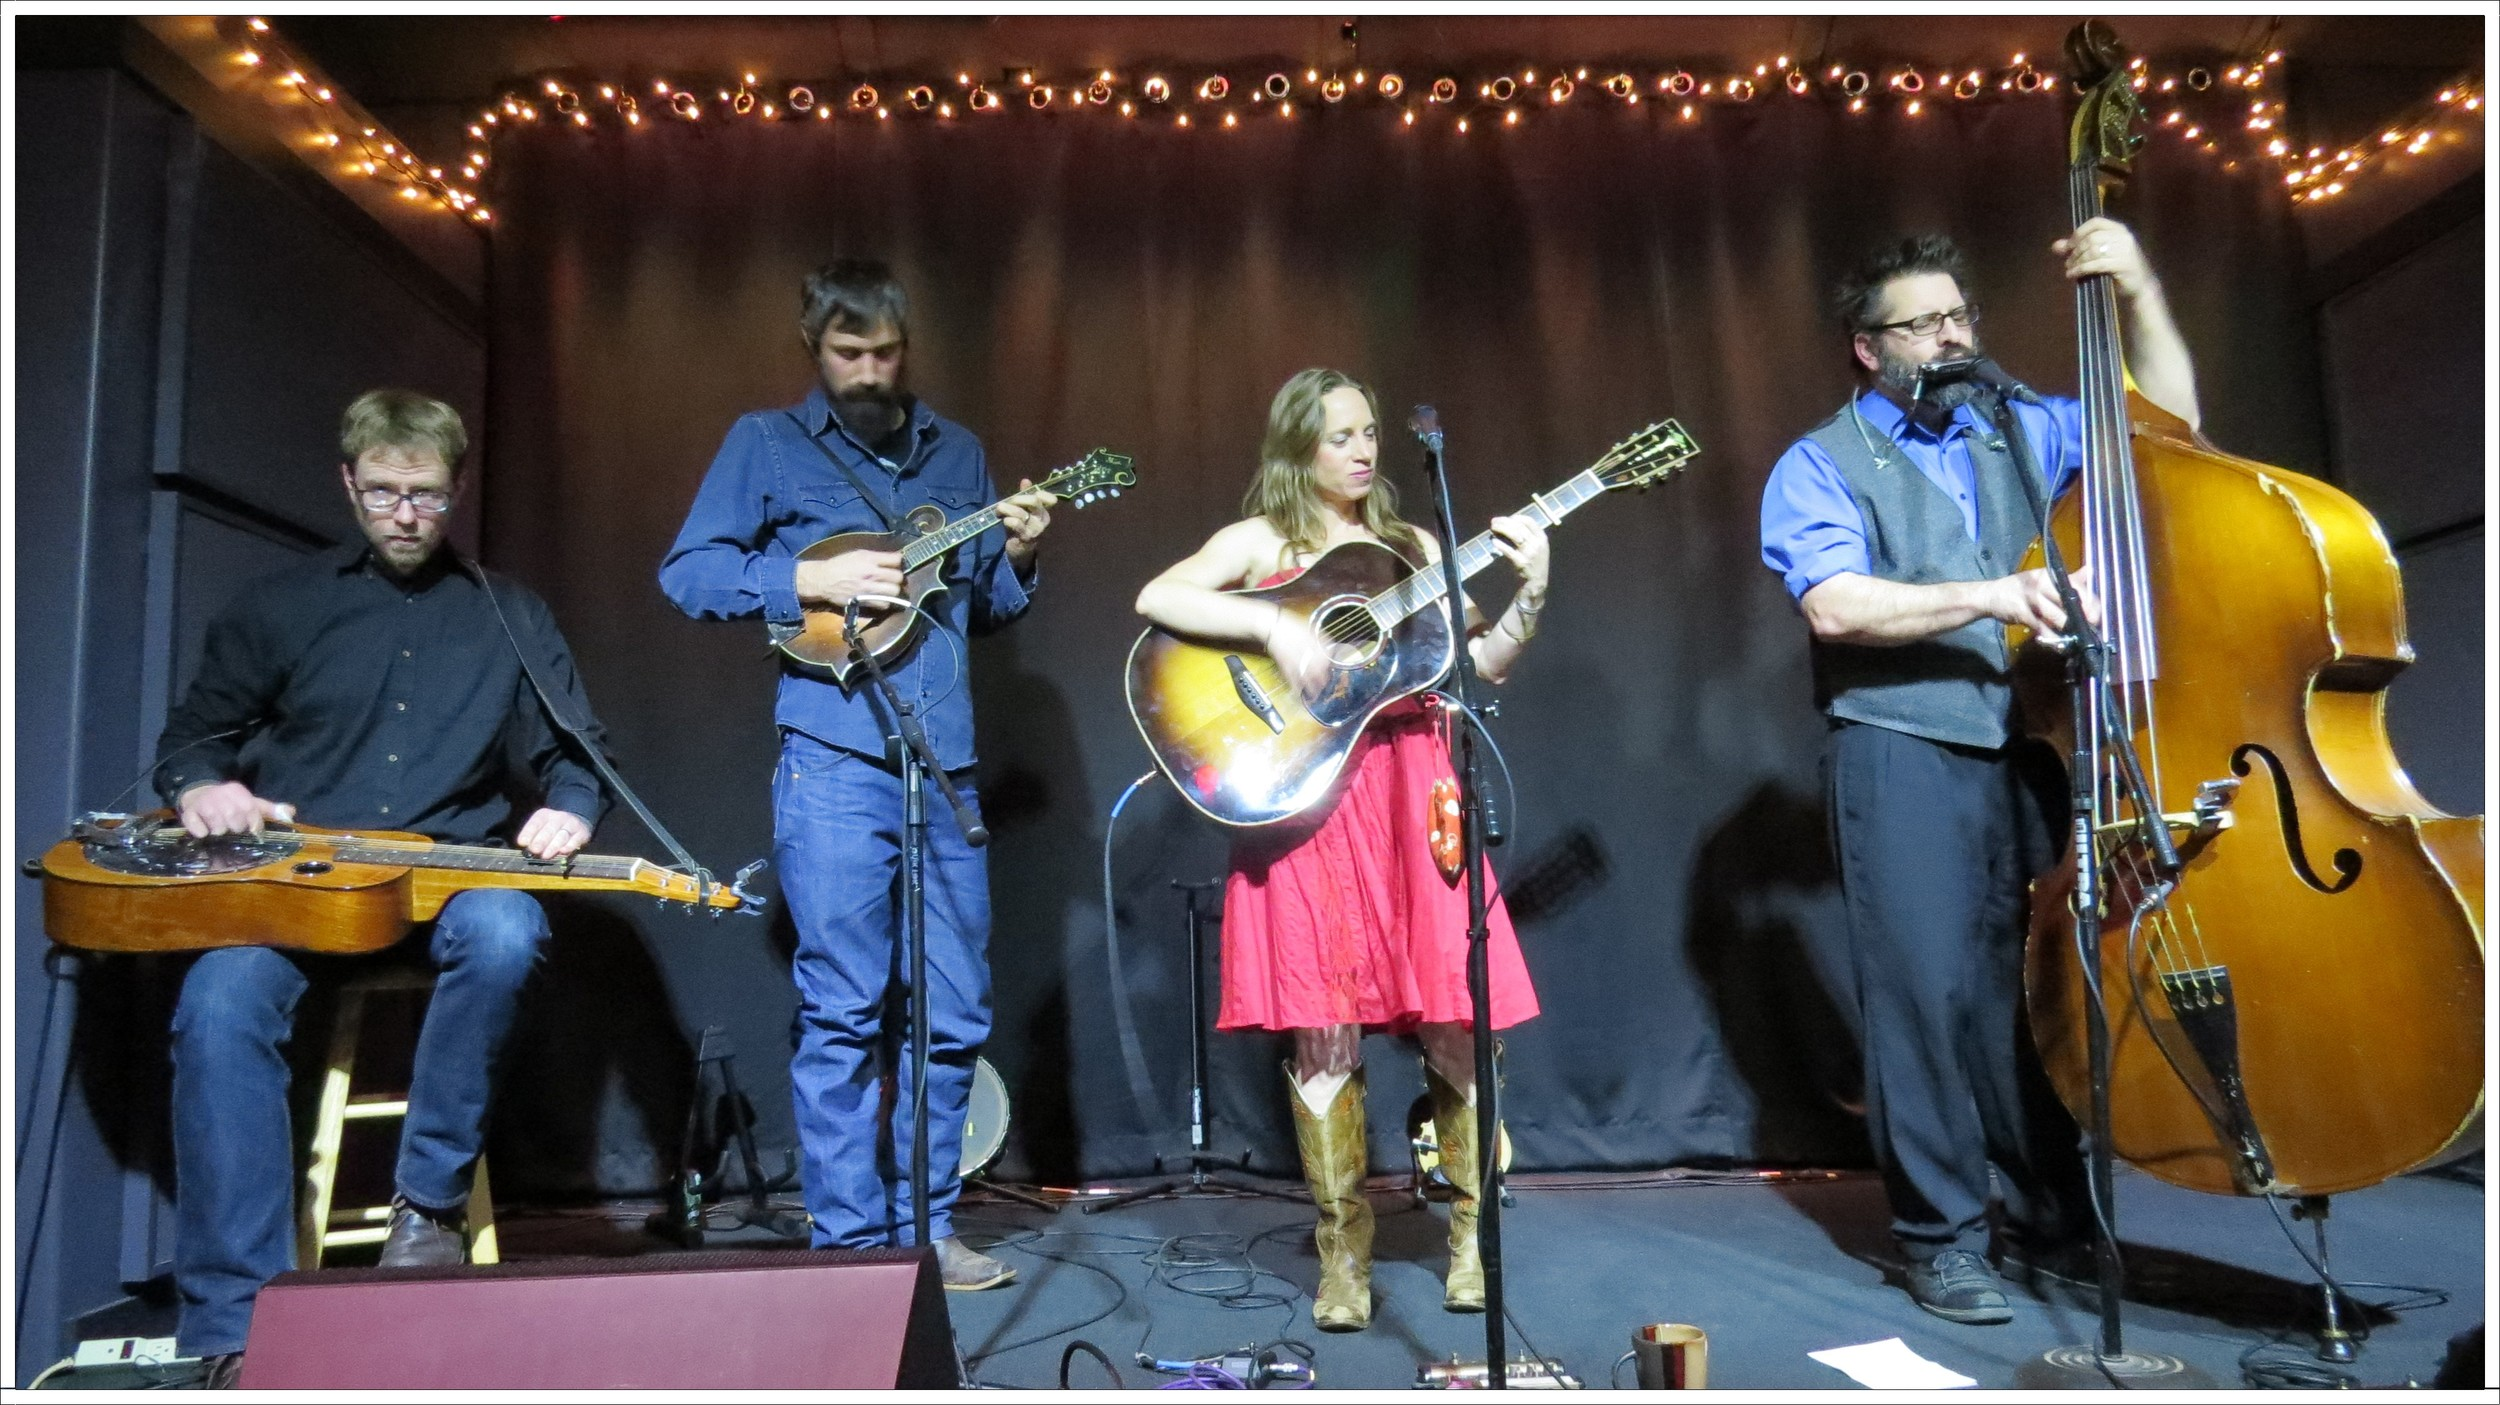 Aaron Ballance, Jed Willis, Anya Hinkle and Stig Stiglets play at Moonlight Mile 1-17-16. Photo: Tom Watts